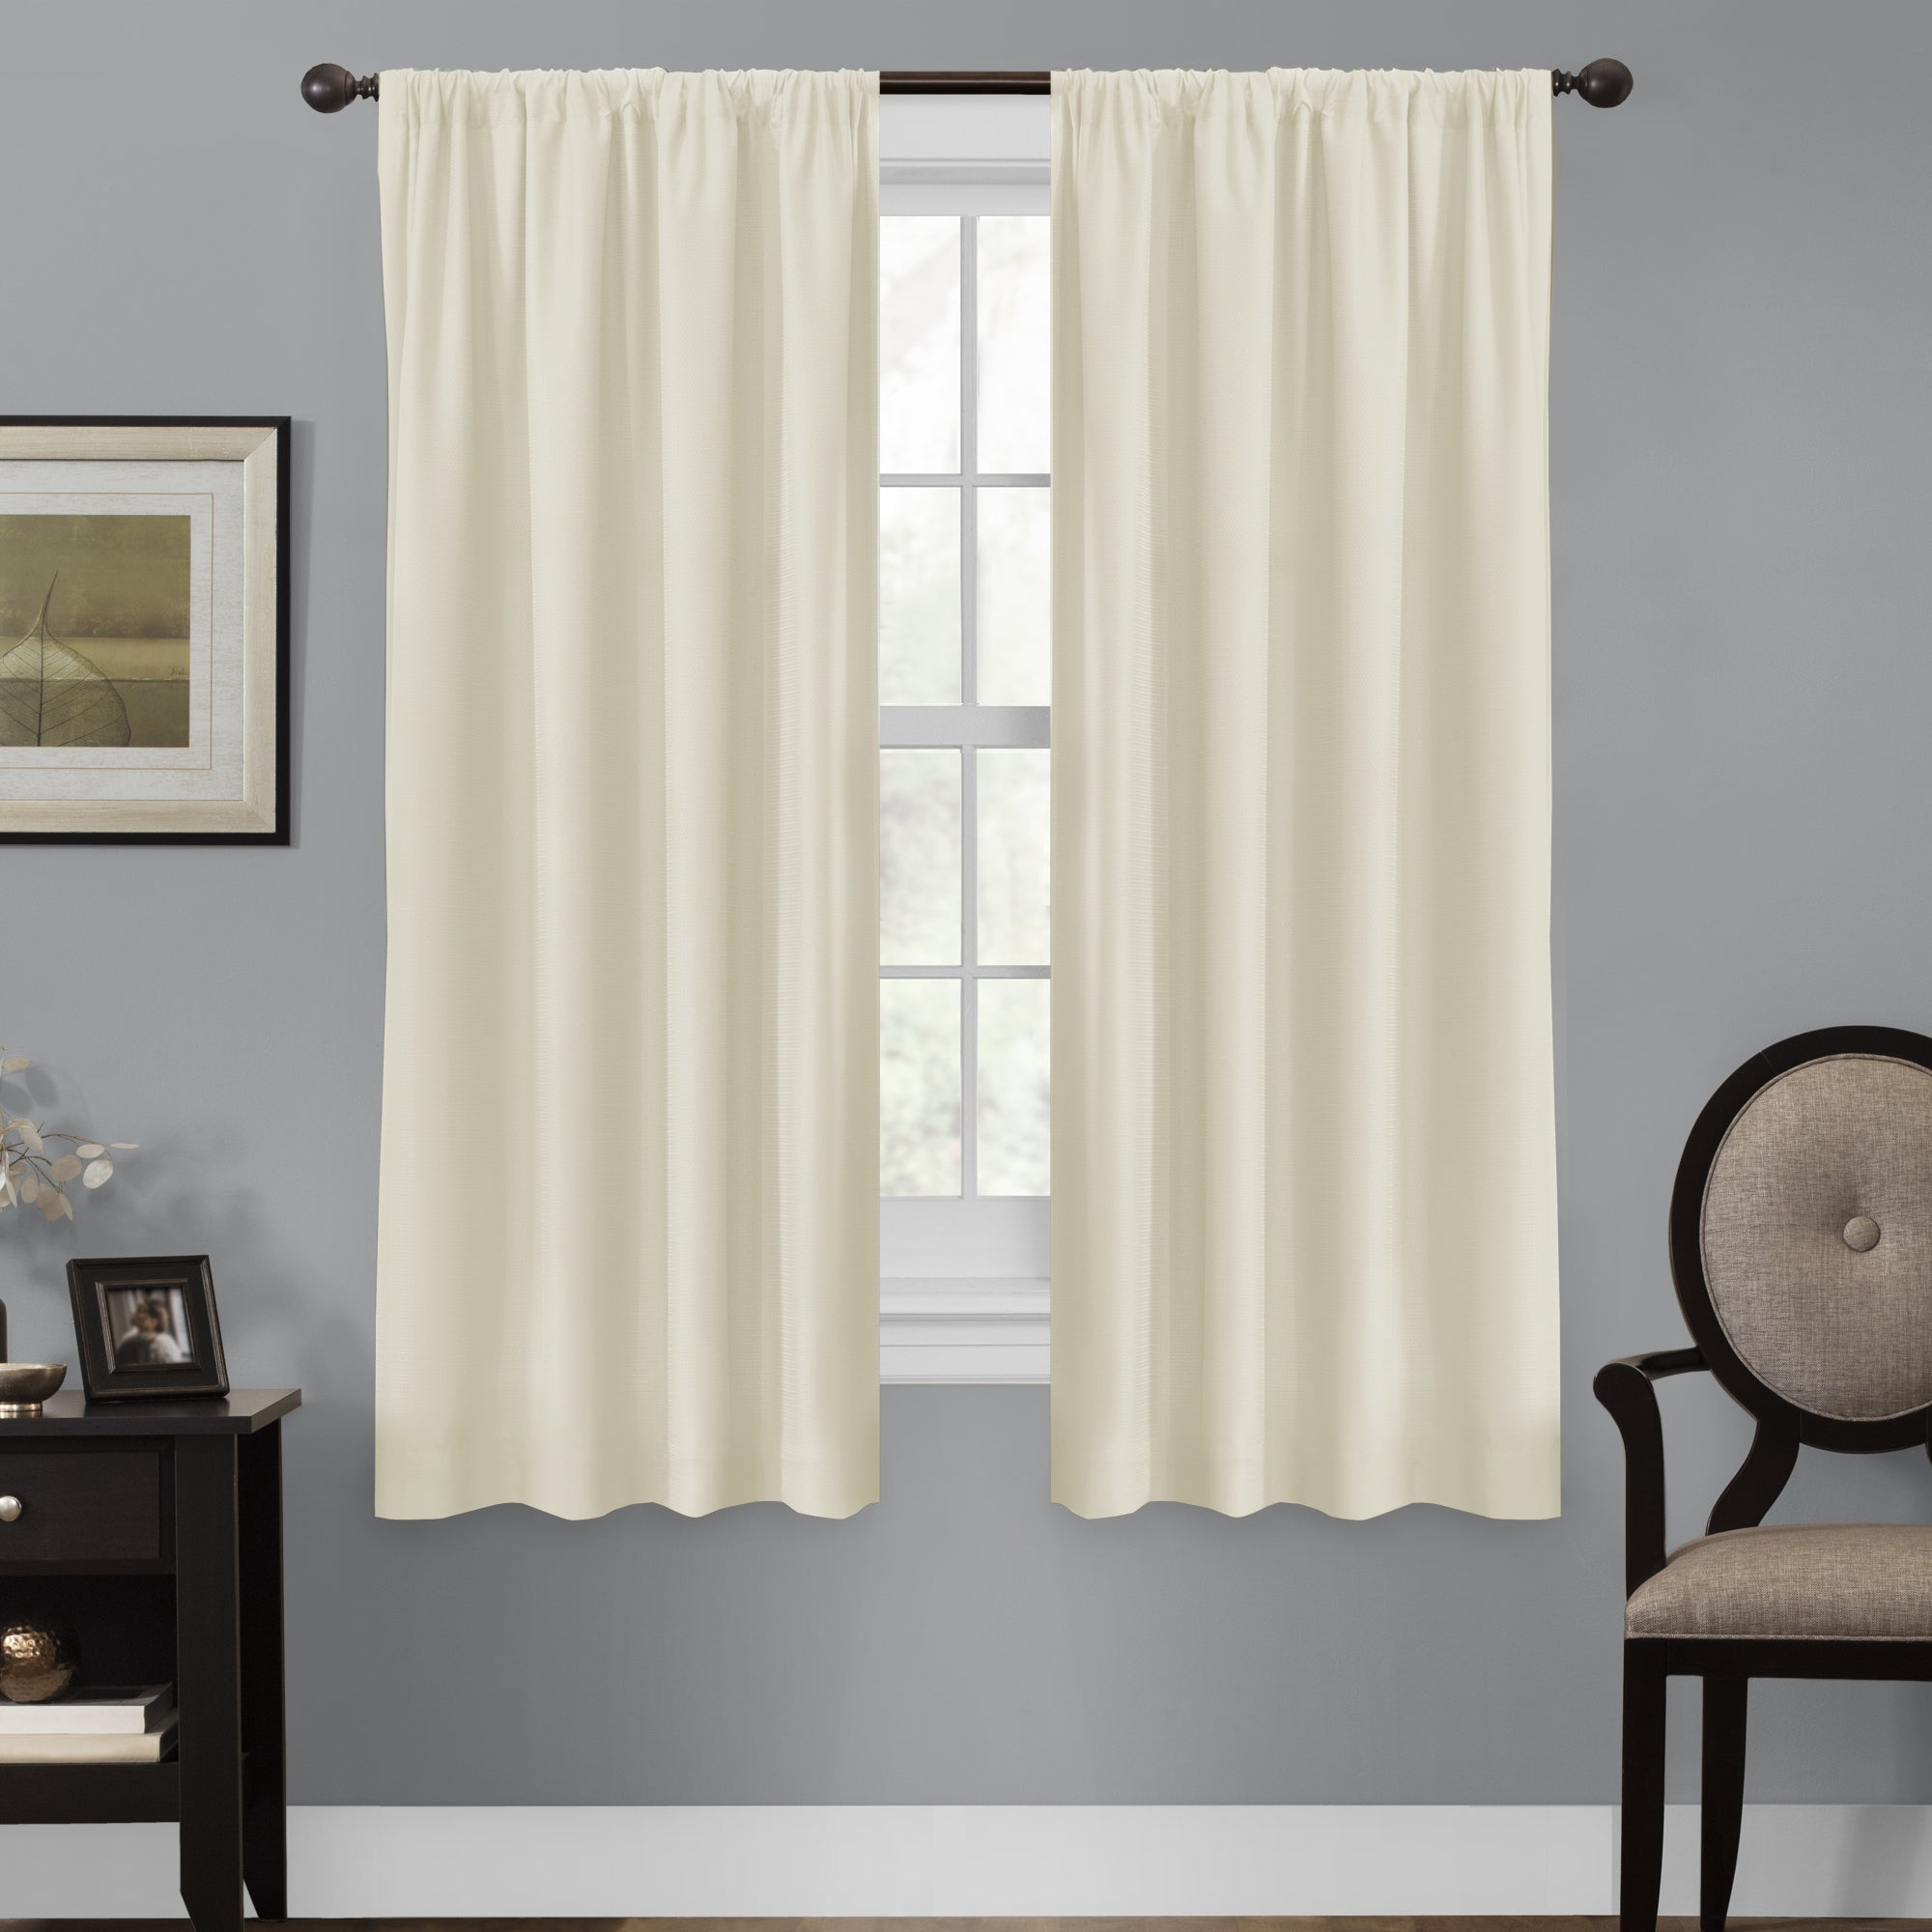 city tan meadow window road com curtains white by amazon dkny floral branches of dp pocket cotton inch panels taupe striped beige set